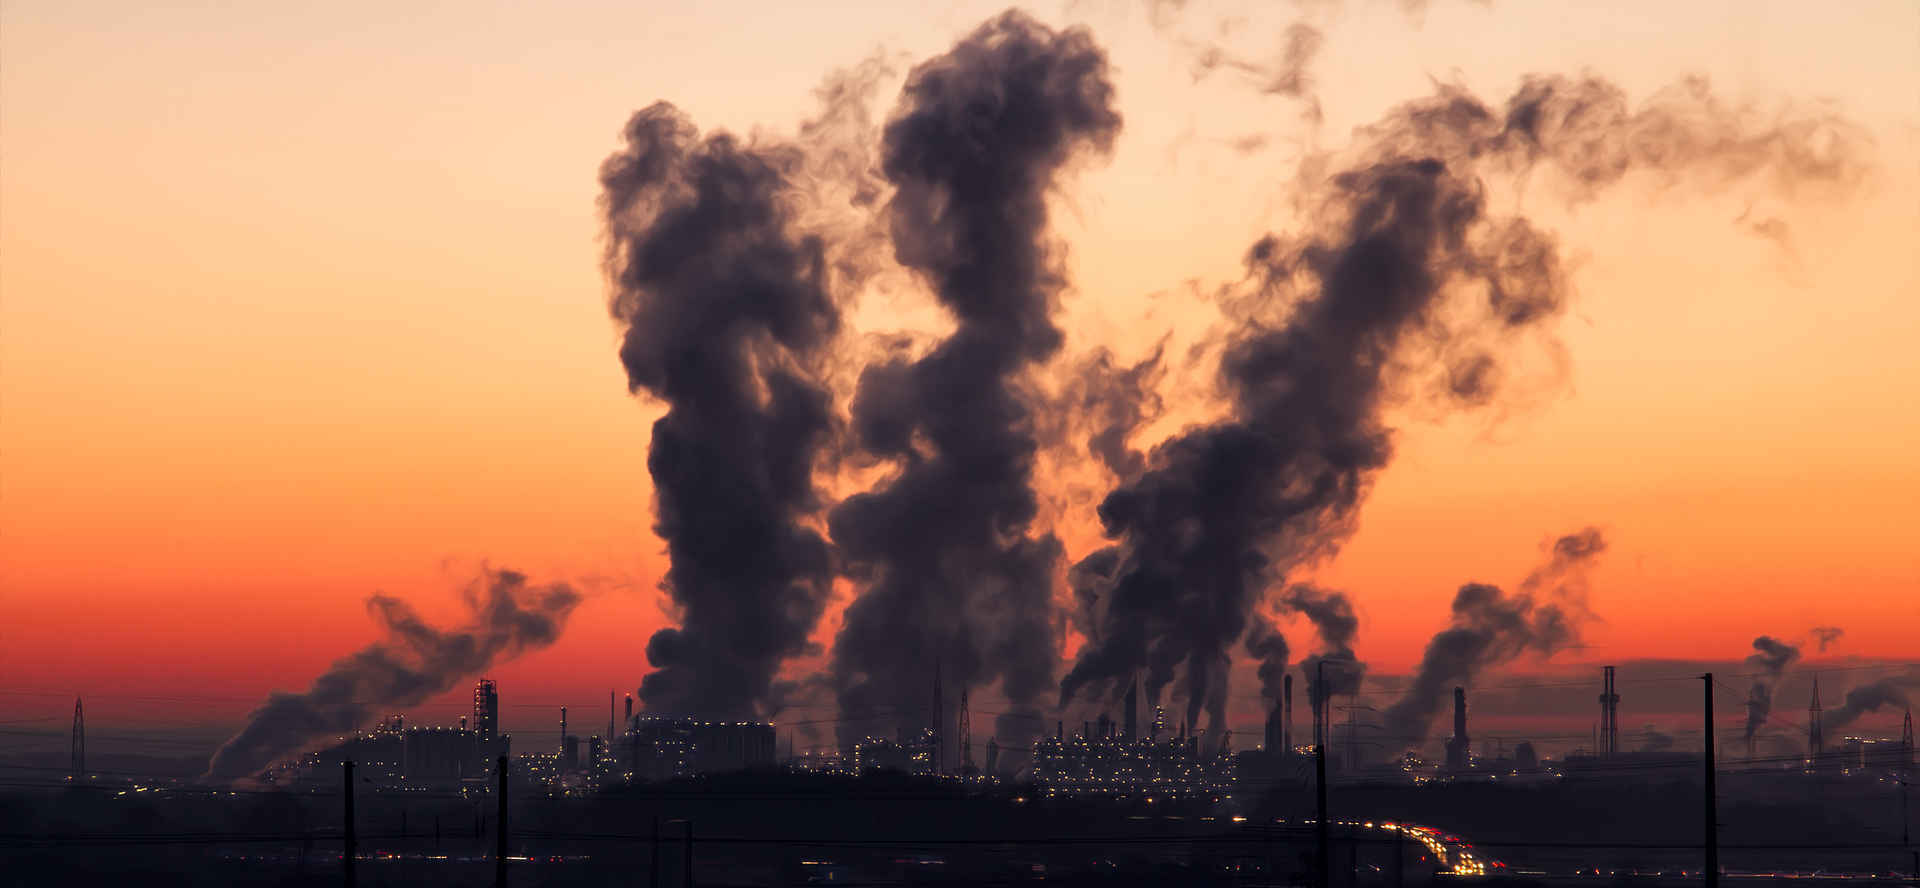 A polluted and smoky environment, illustrating the influence of pollution on unethical behavior.